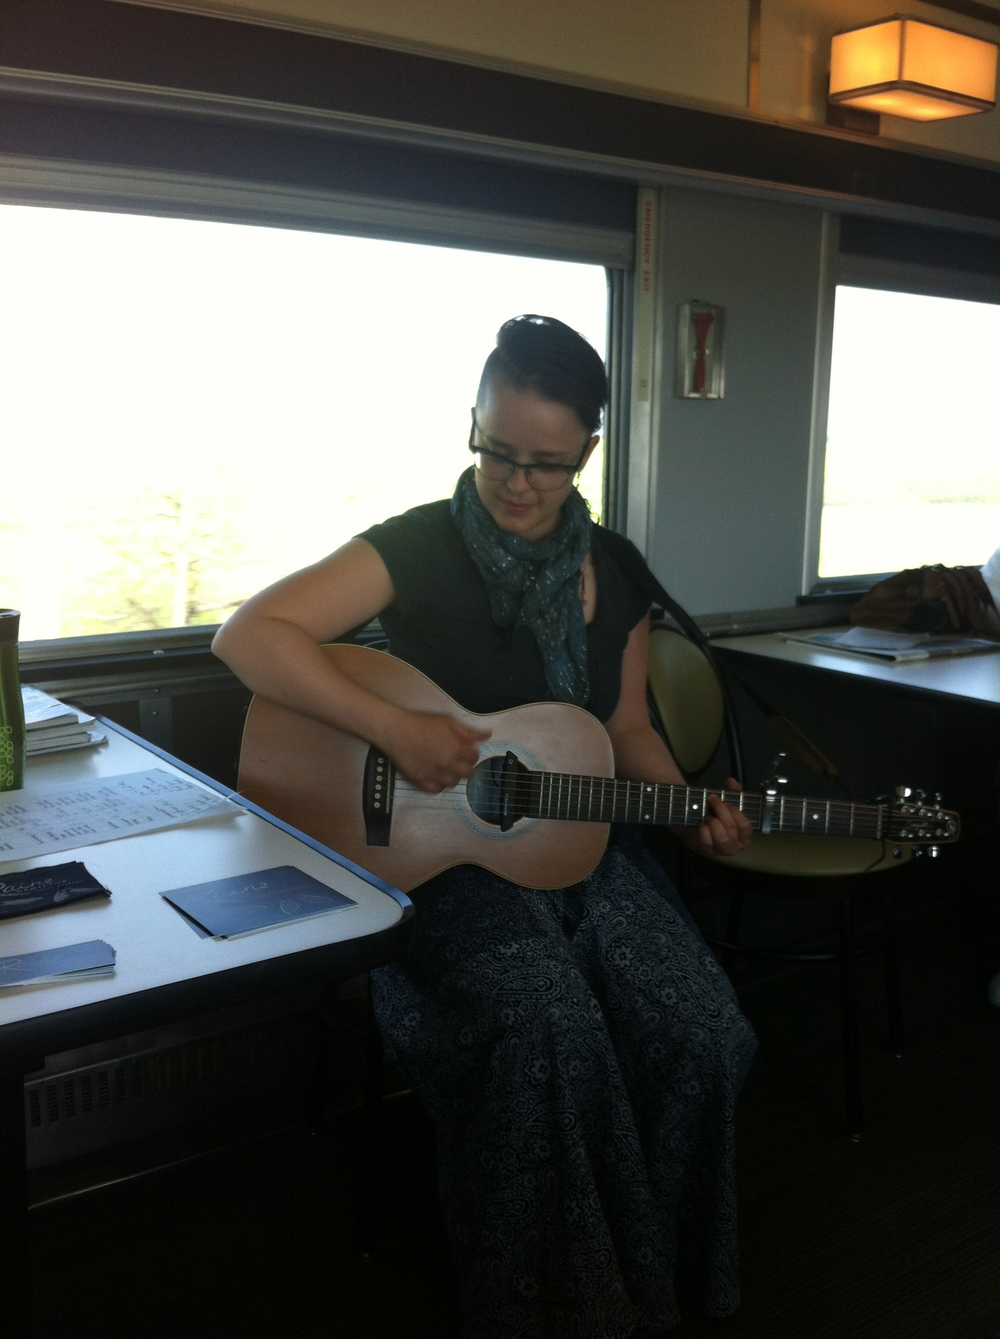 Making music on the train :)